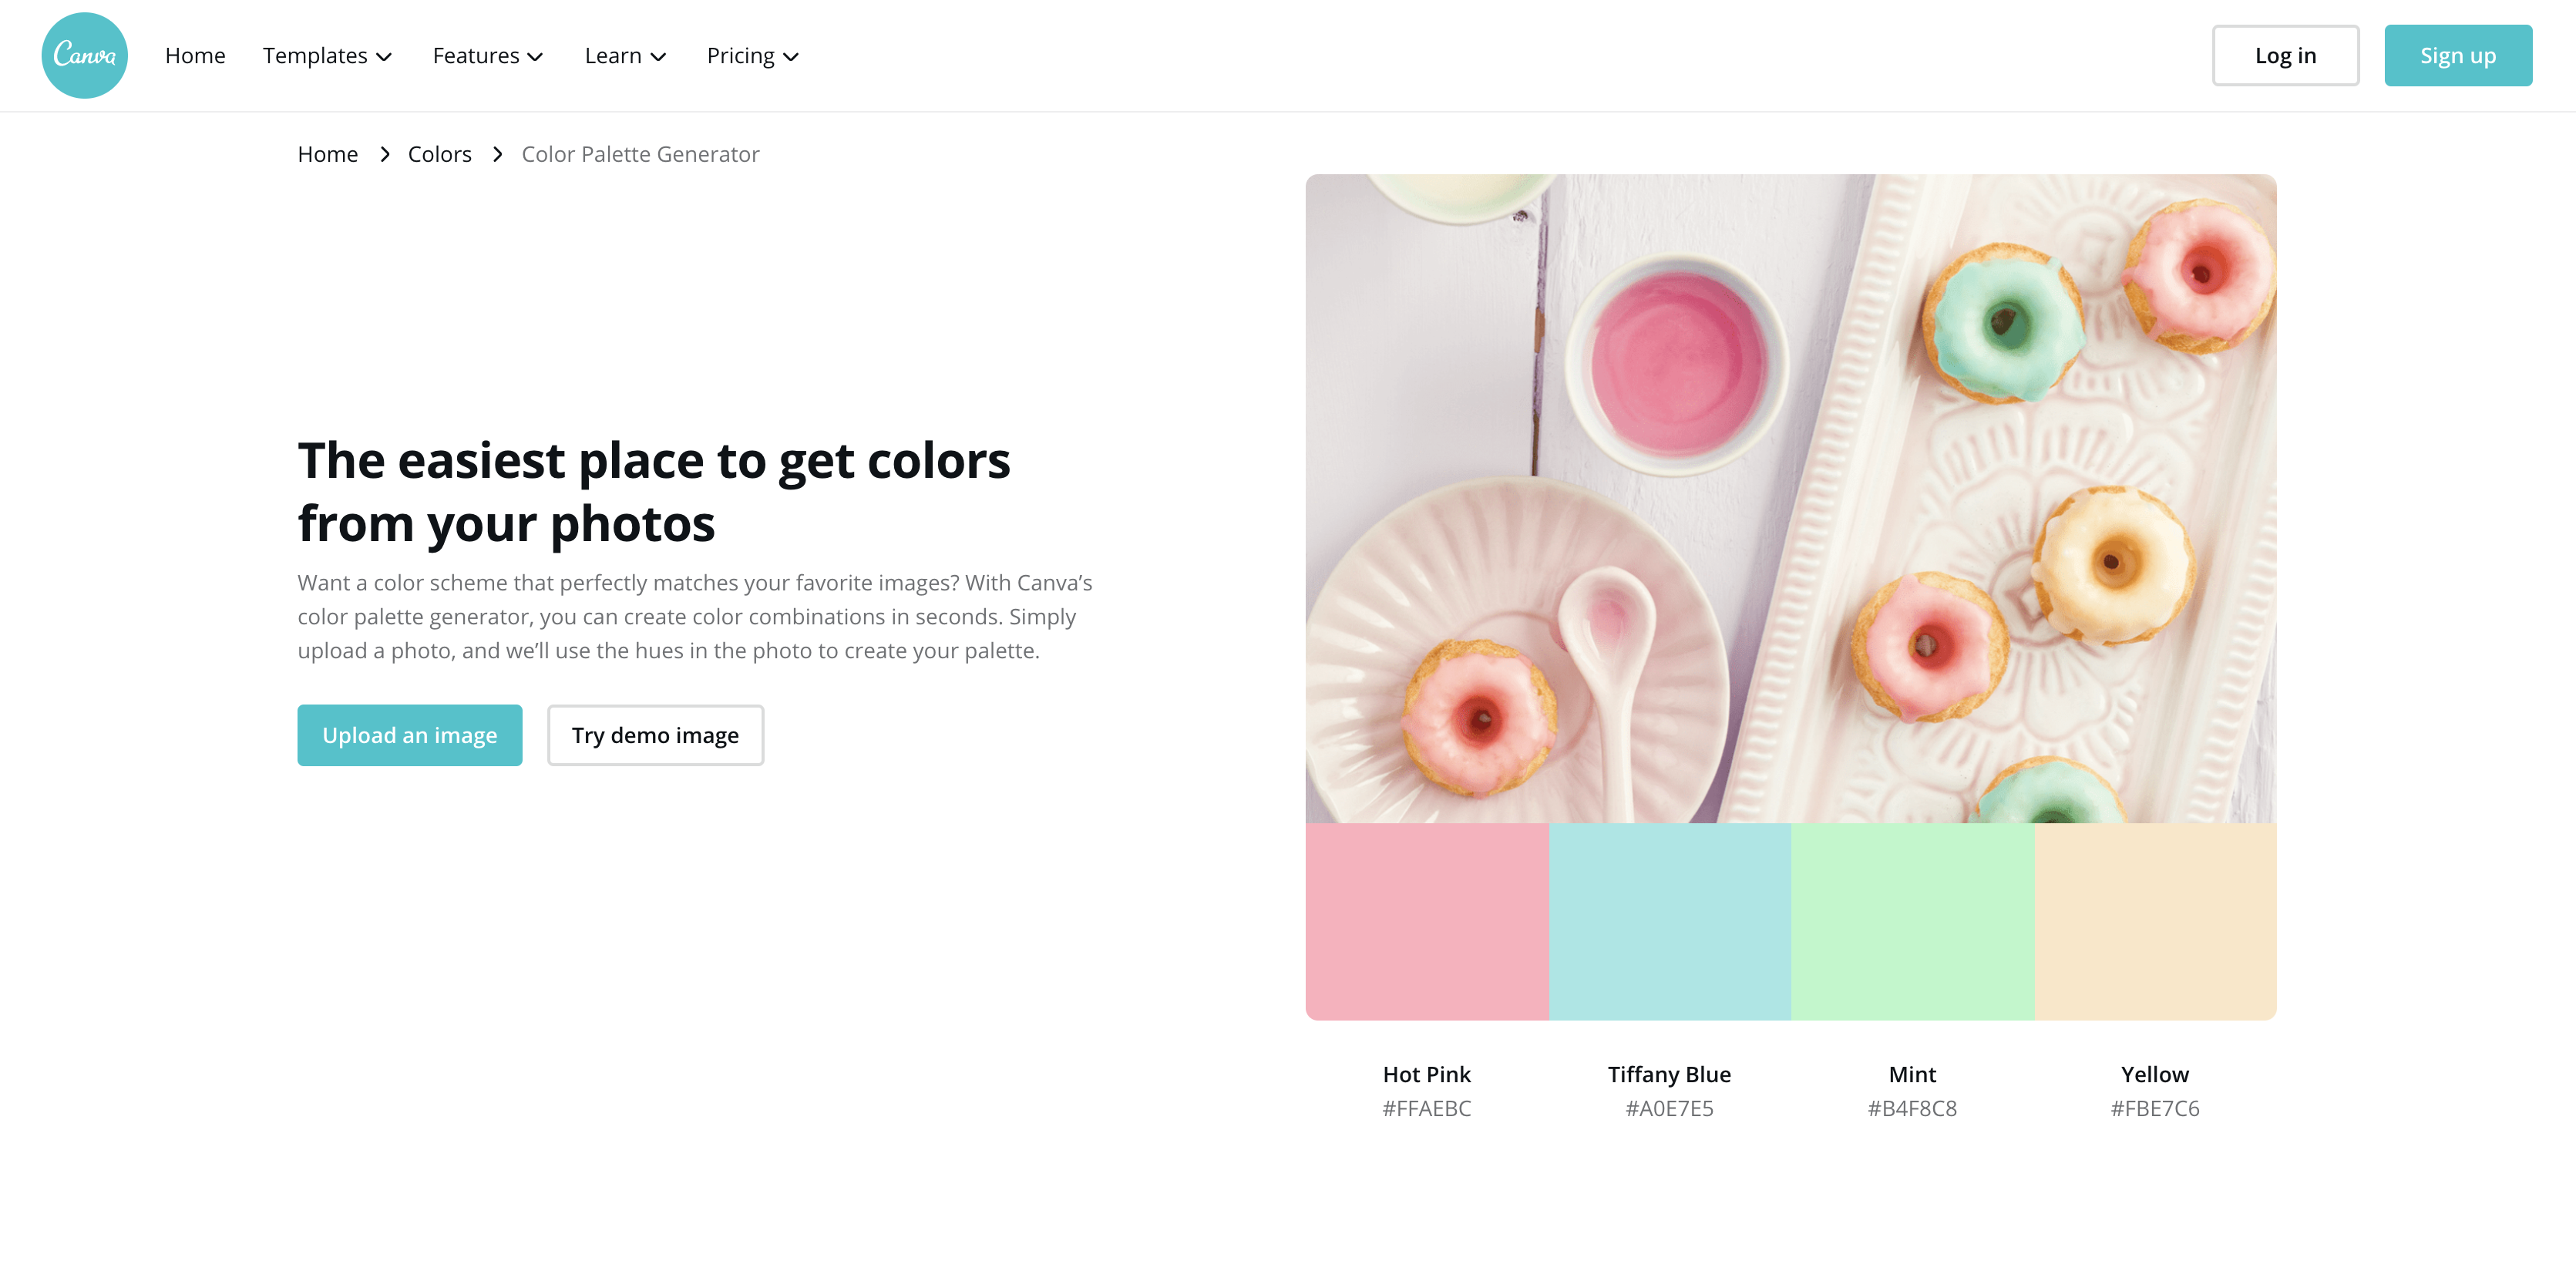 A color palette generator example from Canva